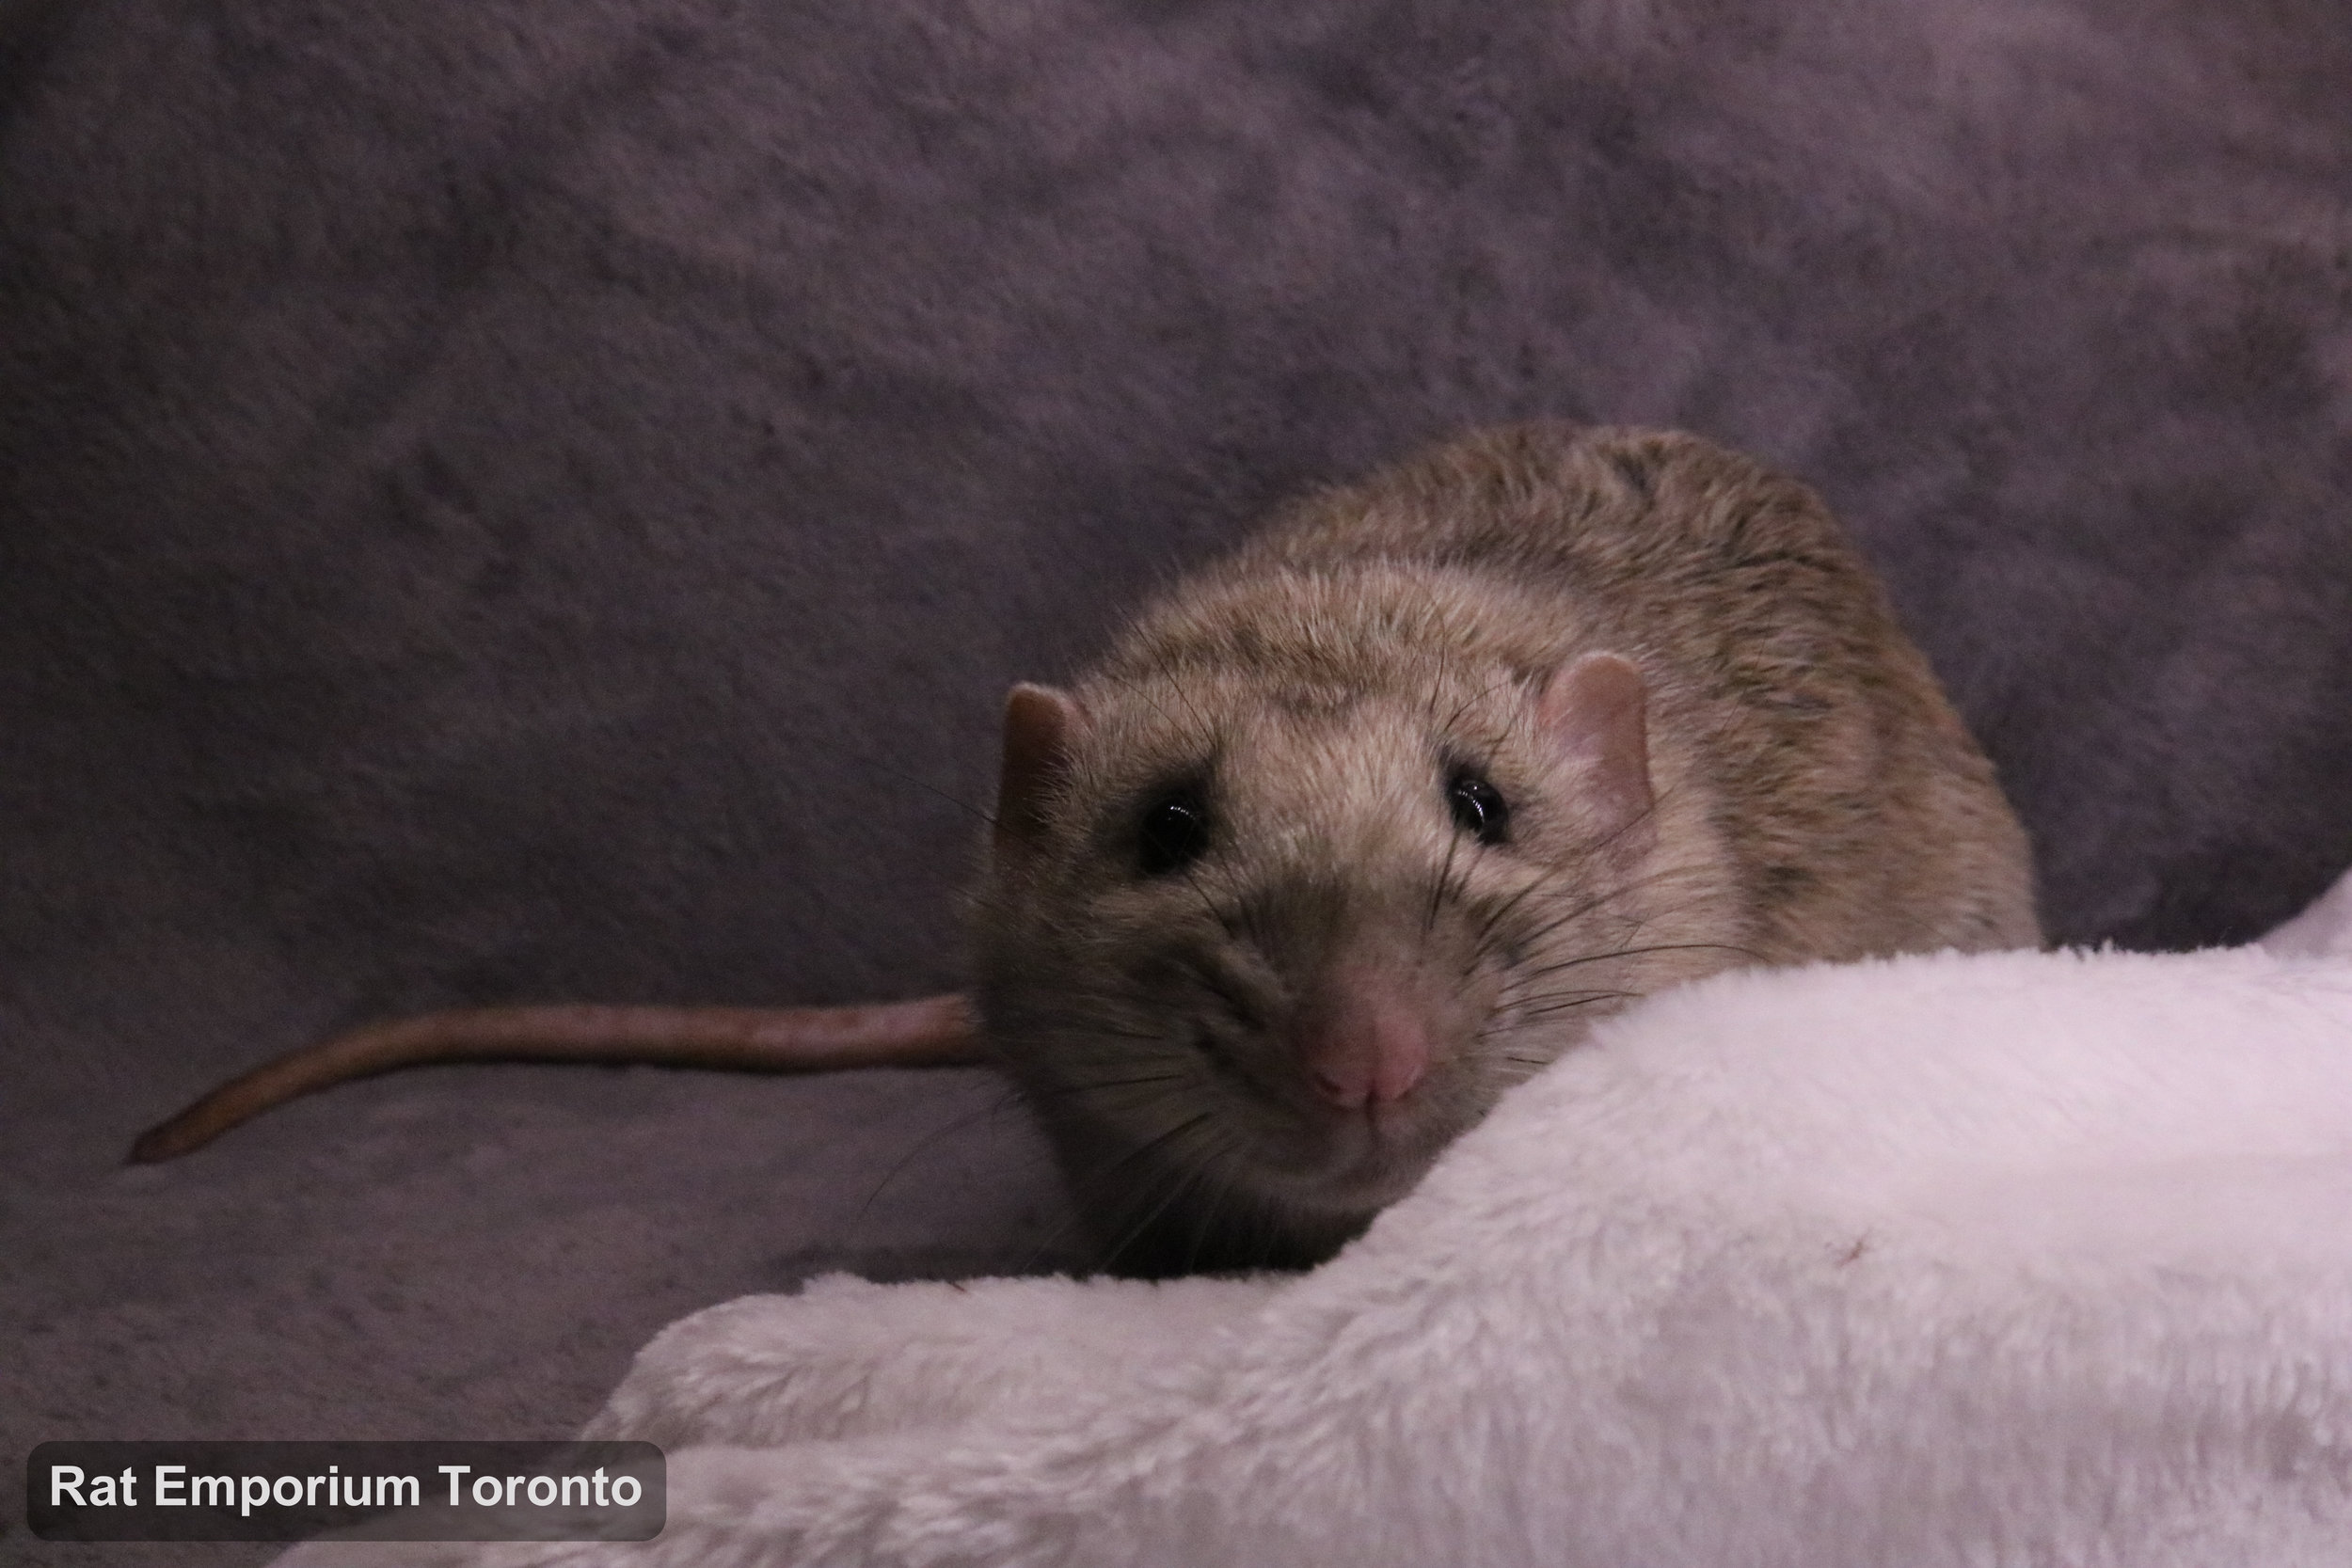 Trace, my silvermane agouti dumbo rat - born and raised at the Rat Emporium Toronto - adopt pet rats - rat breeder